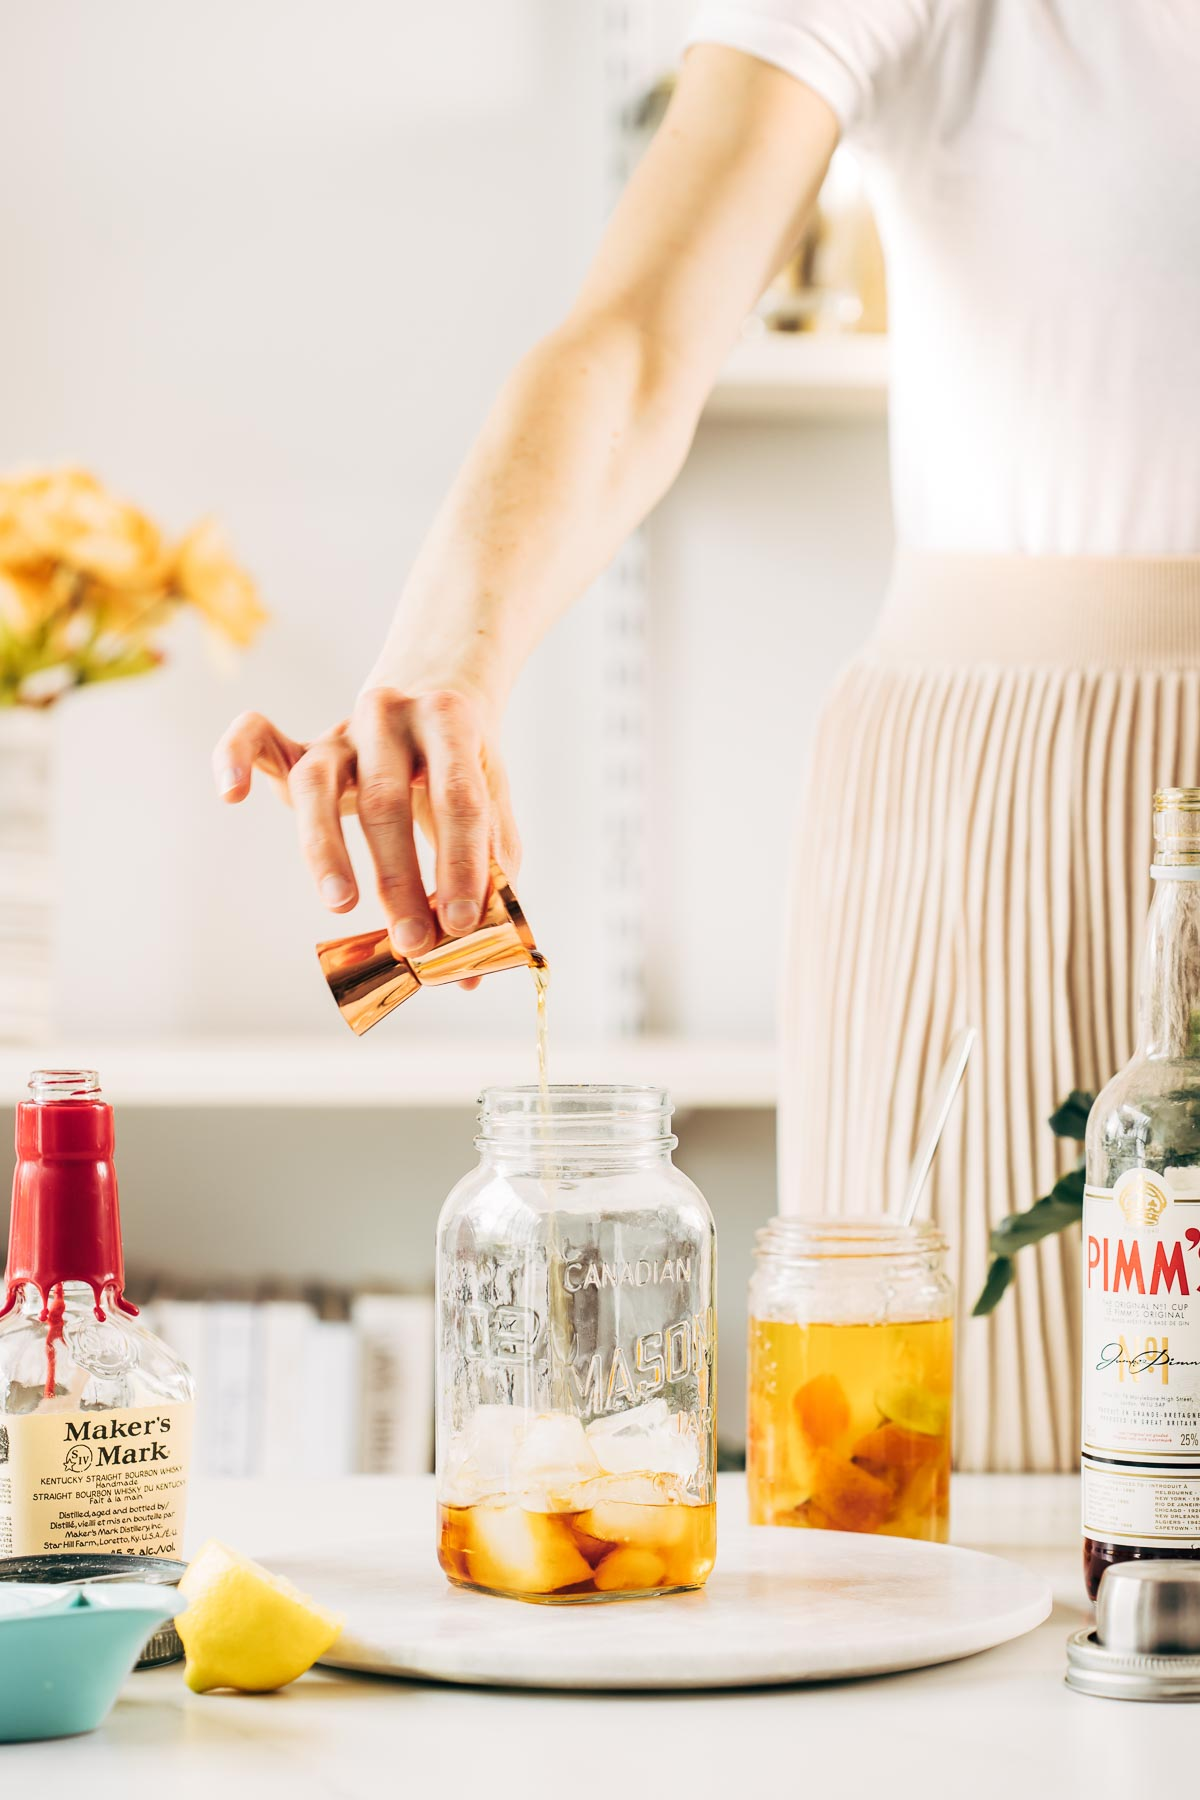 A woman's hand pouring liquid into a jar.